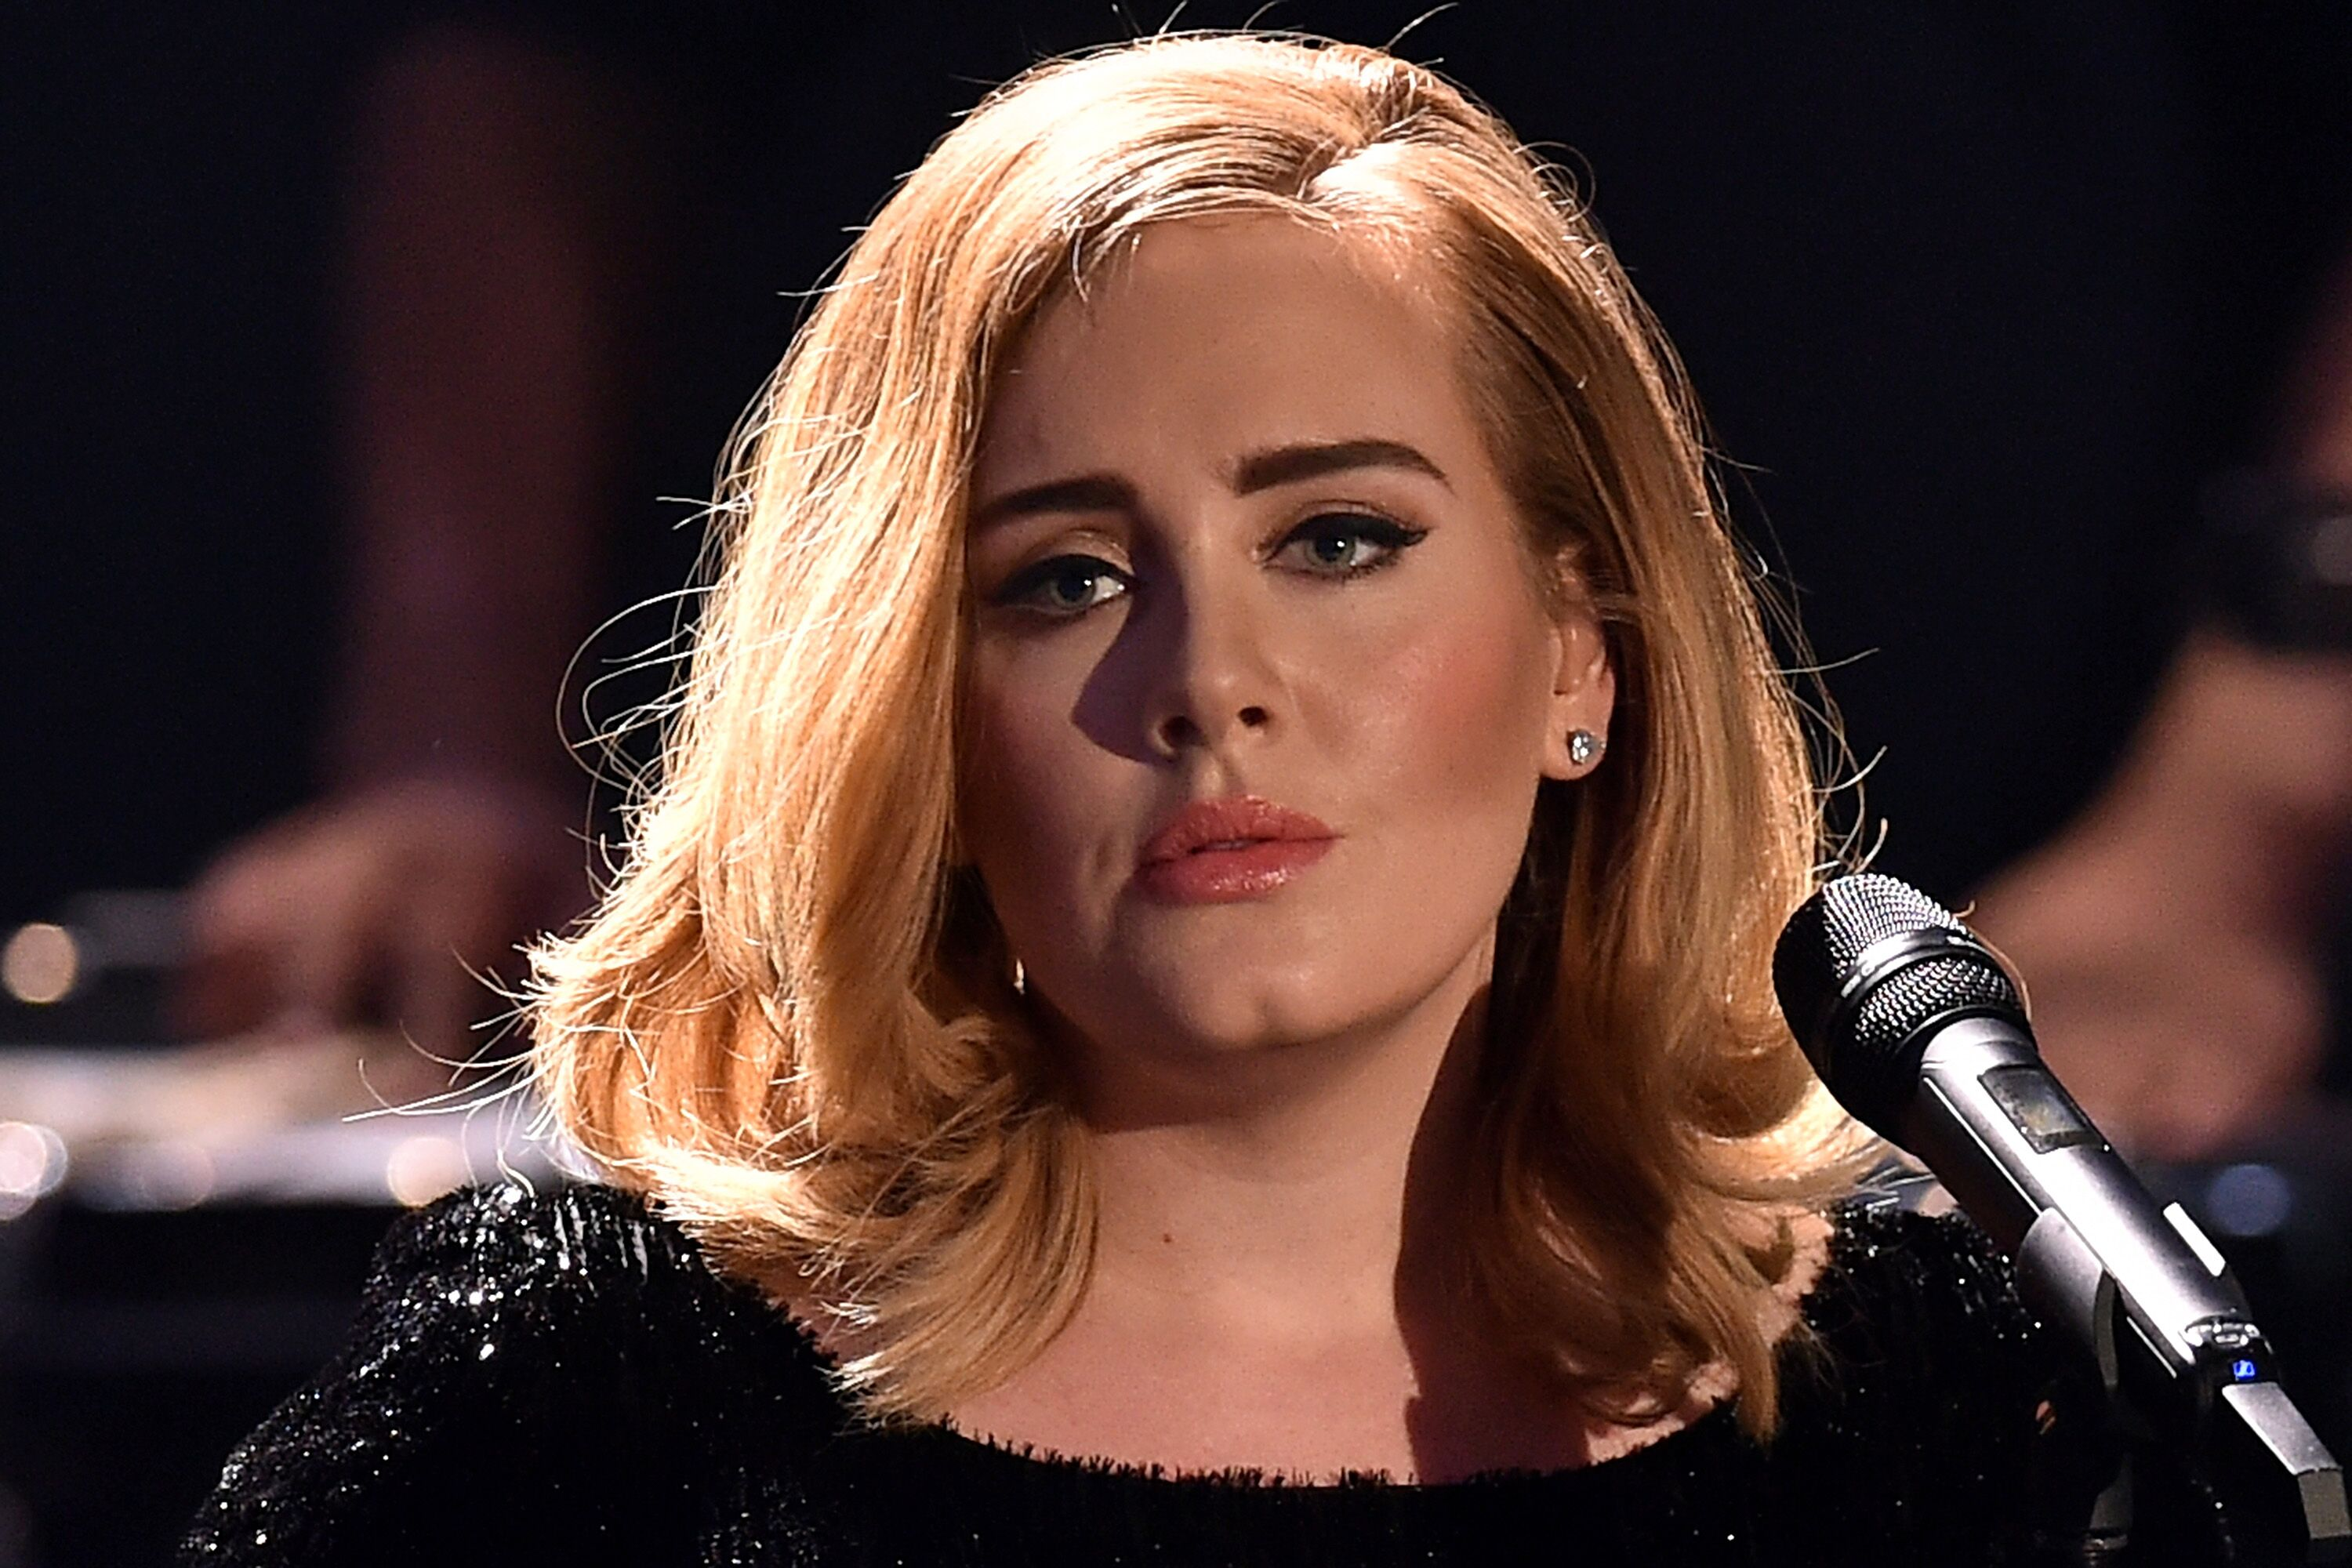 Image Credit: Getty Images / Acclaimed singer, Adele during one of her performances.